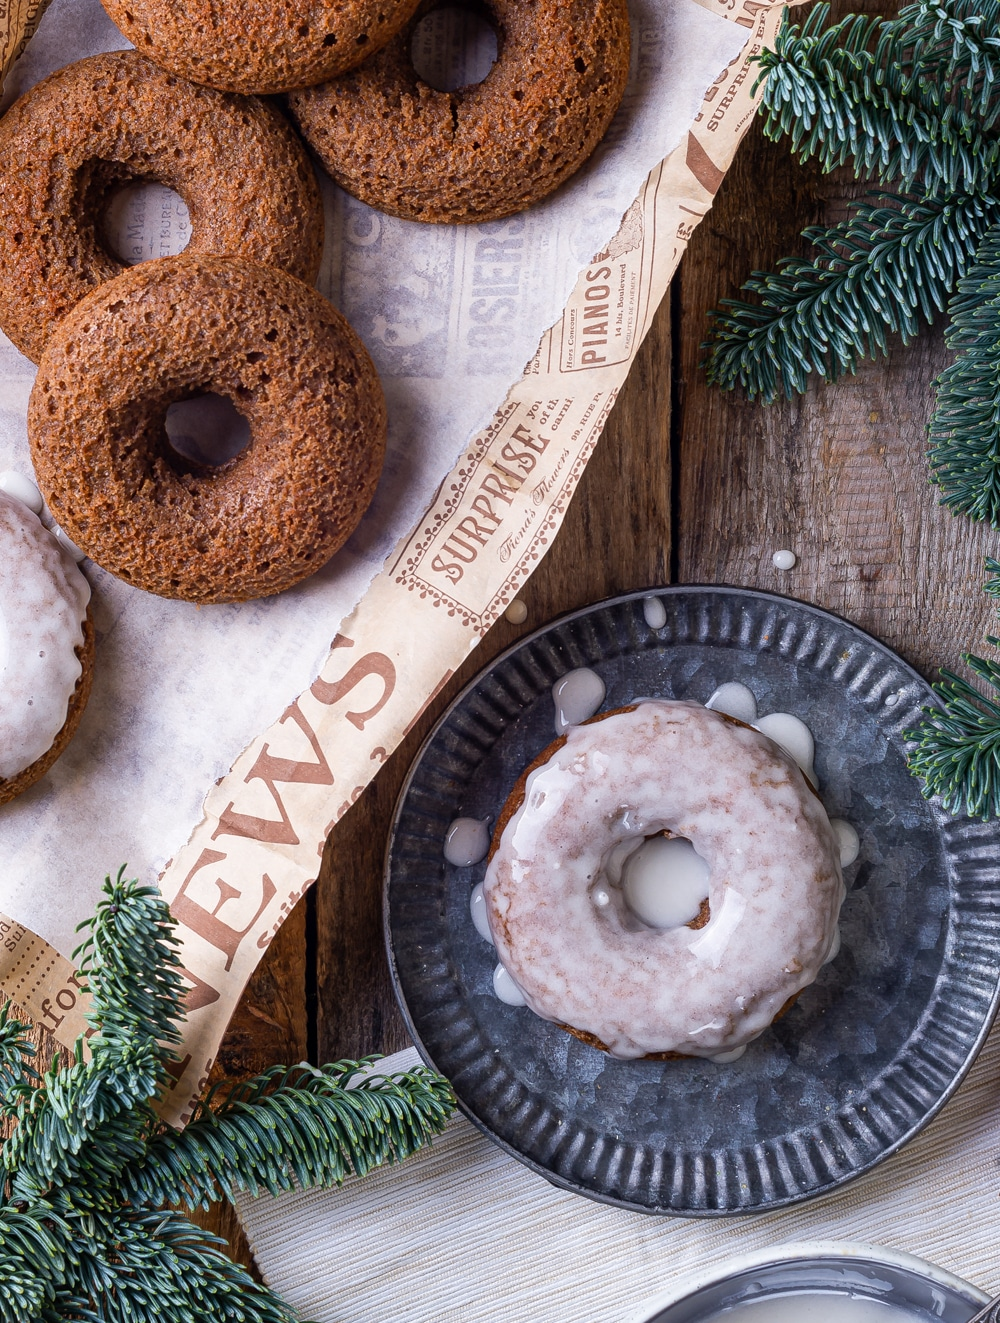 Three plain gingerbread donuts overlapping on a piece of paper. A glazed gingerbread donut is on a plate to the right of the piece of paper. Everything is set on top of a wooden table.